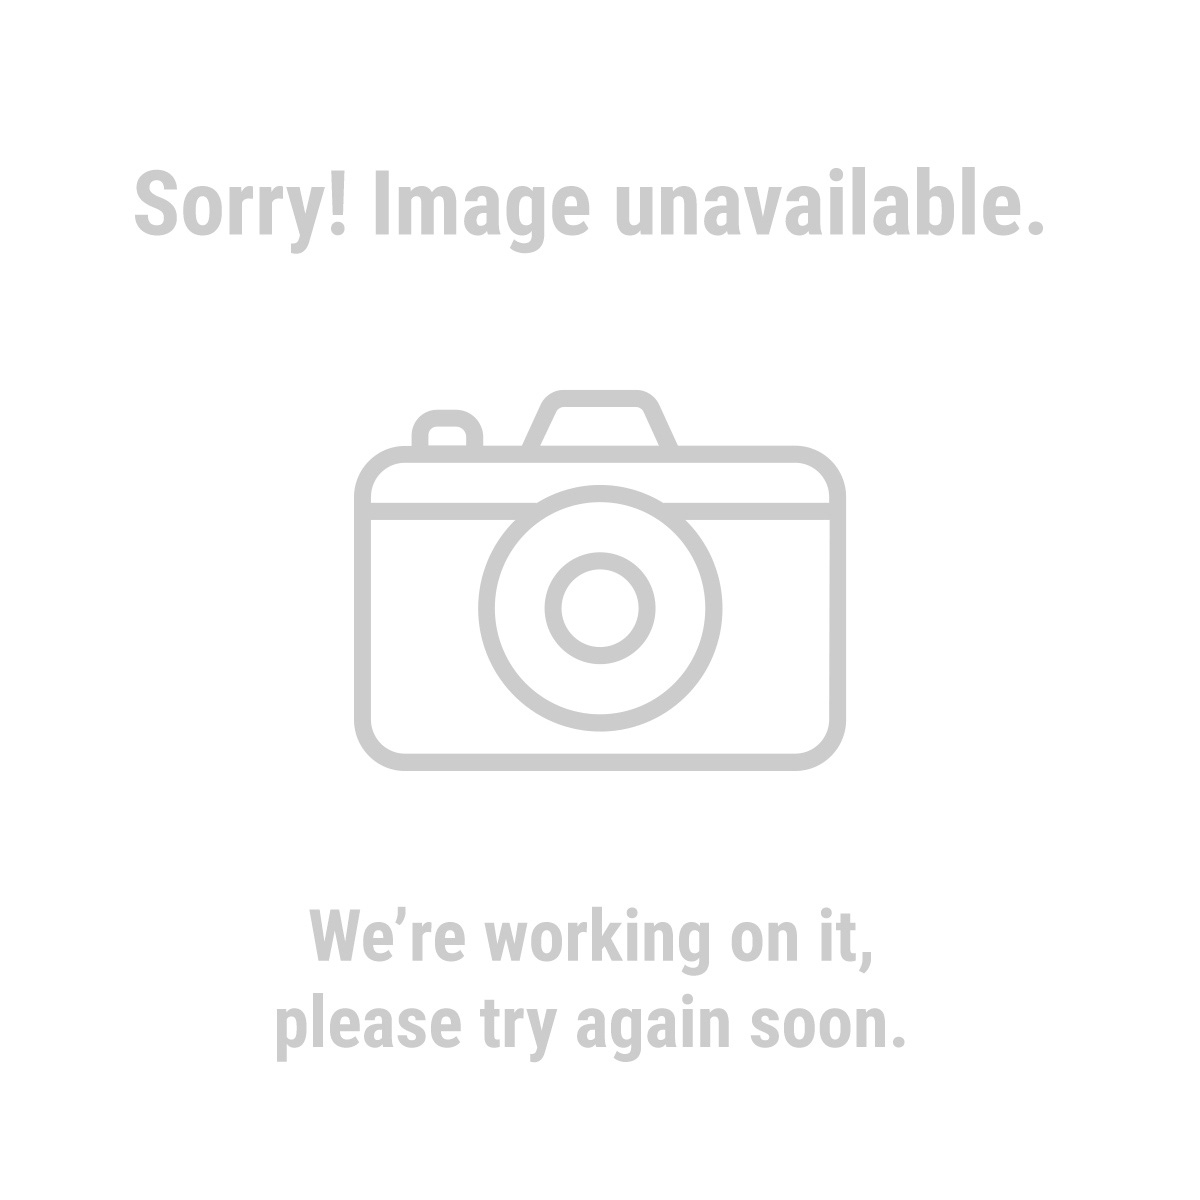 Chicago Electric Power Tools 62503 1 in. 7.3 Amp Heavy Duty SDS Variable Speed Rotary Hammer